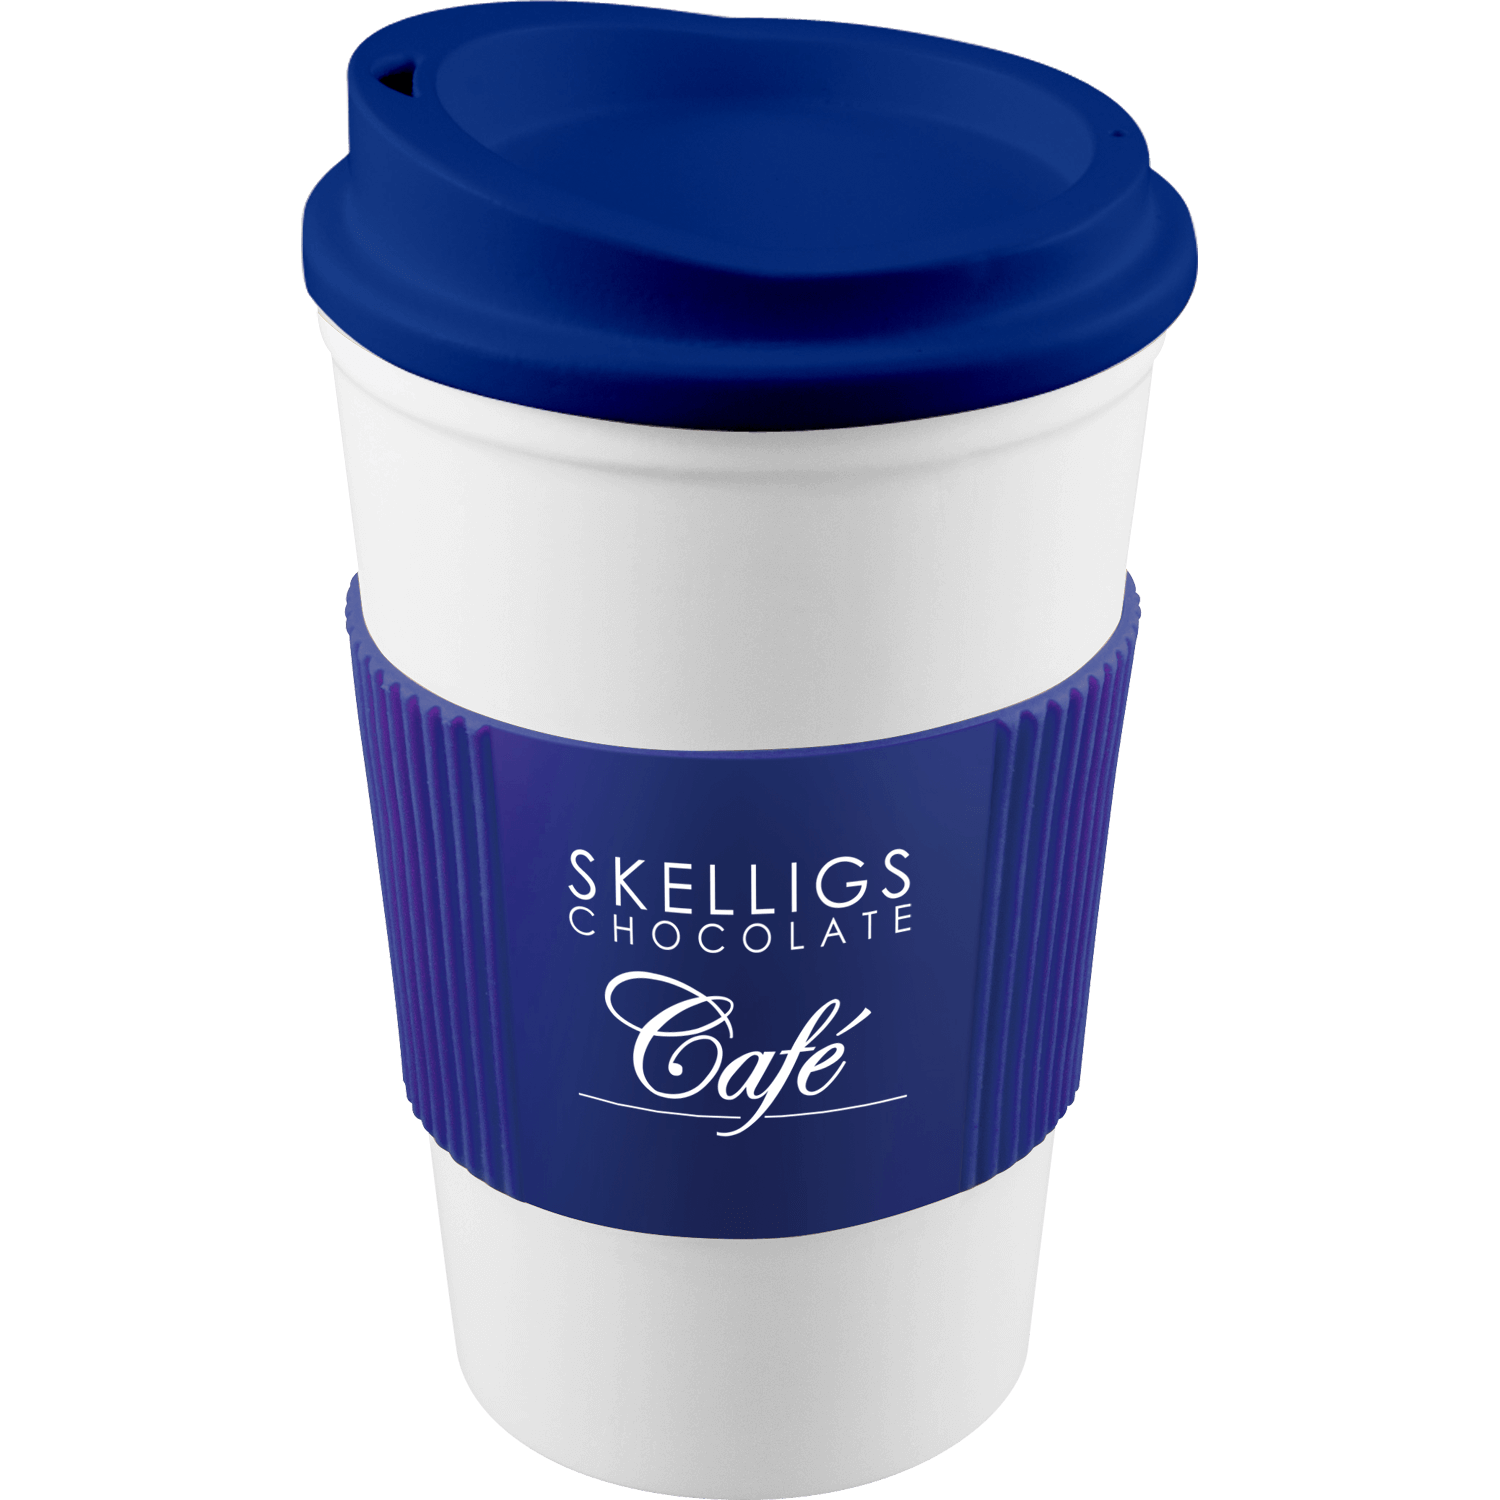 White Mug - Blue Lid (280) - Blue Grip (280)